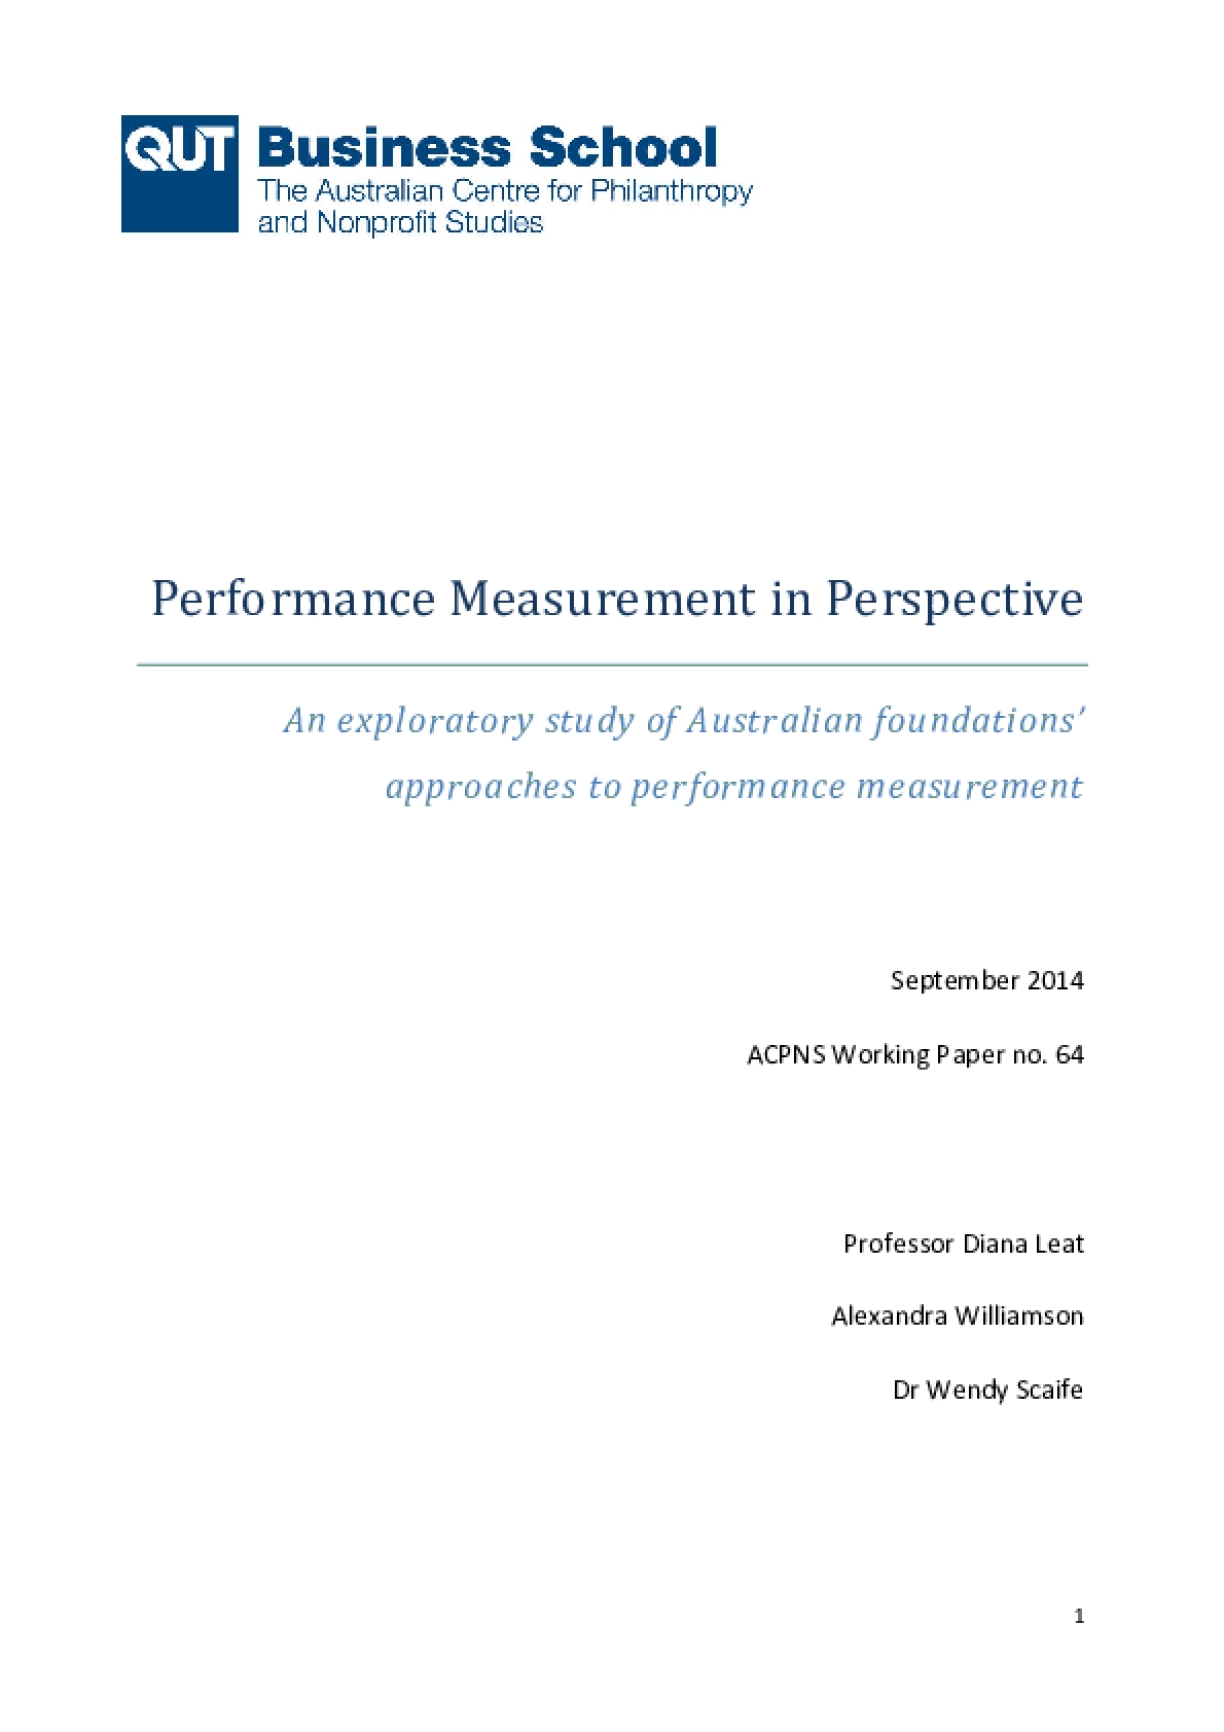 Performance Measurement in Perspective: An exploratory study of Australian foundations' approaches to performance measurement